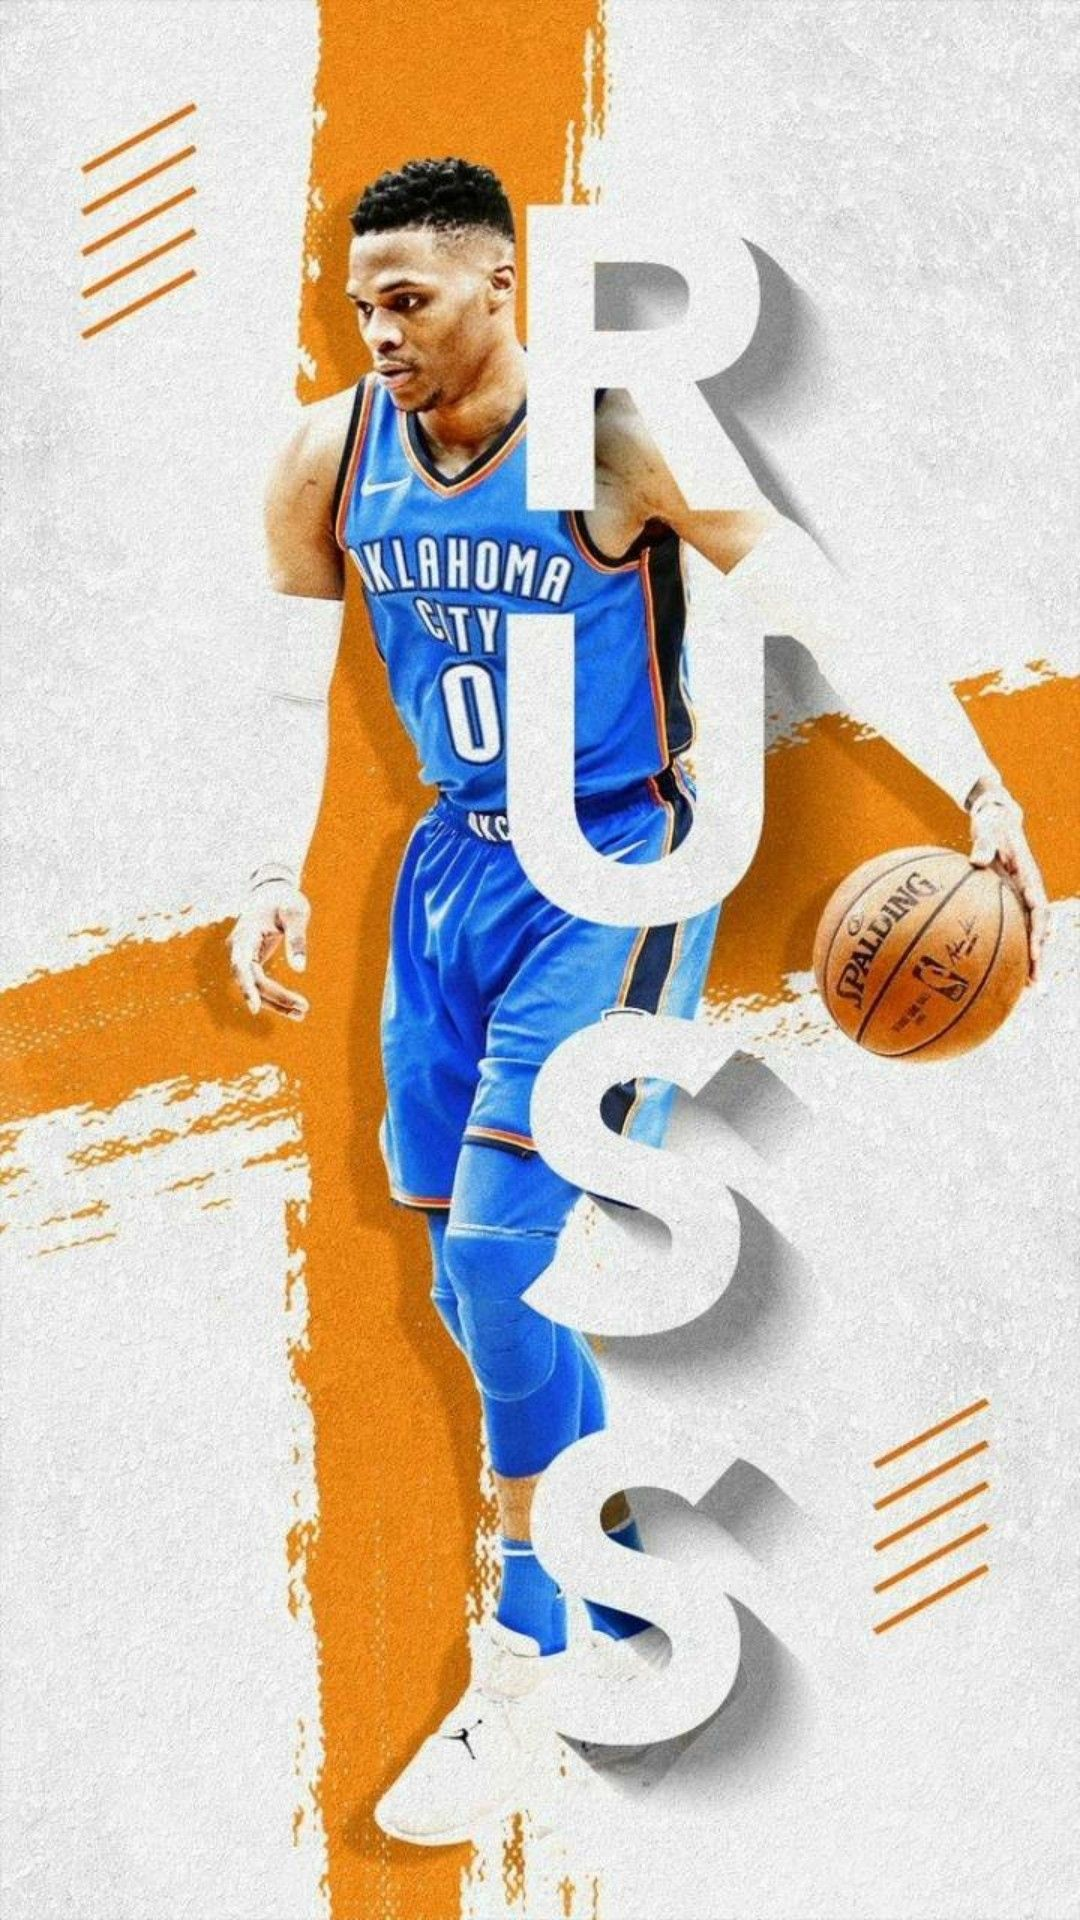 Great Russell Westbrook wallpaper from the Oklahoma